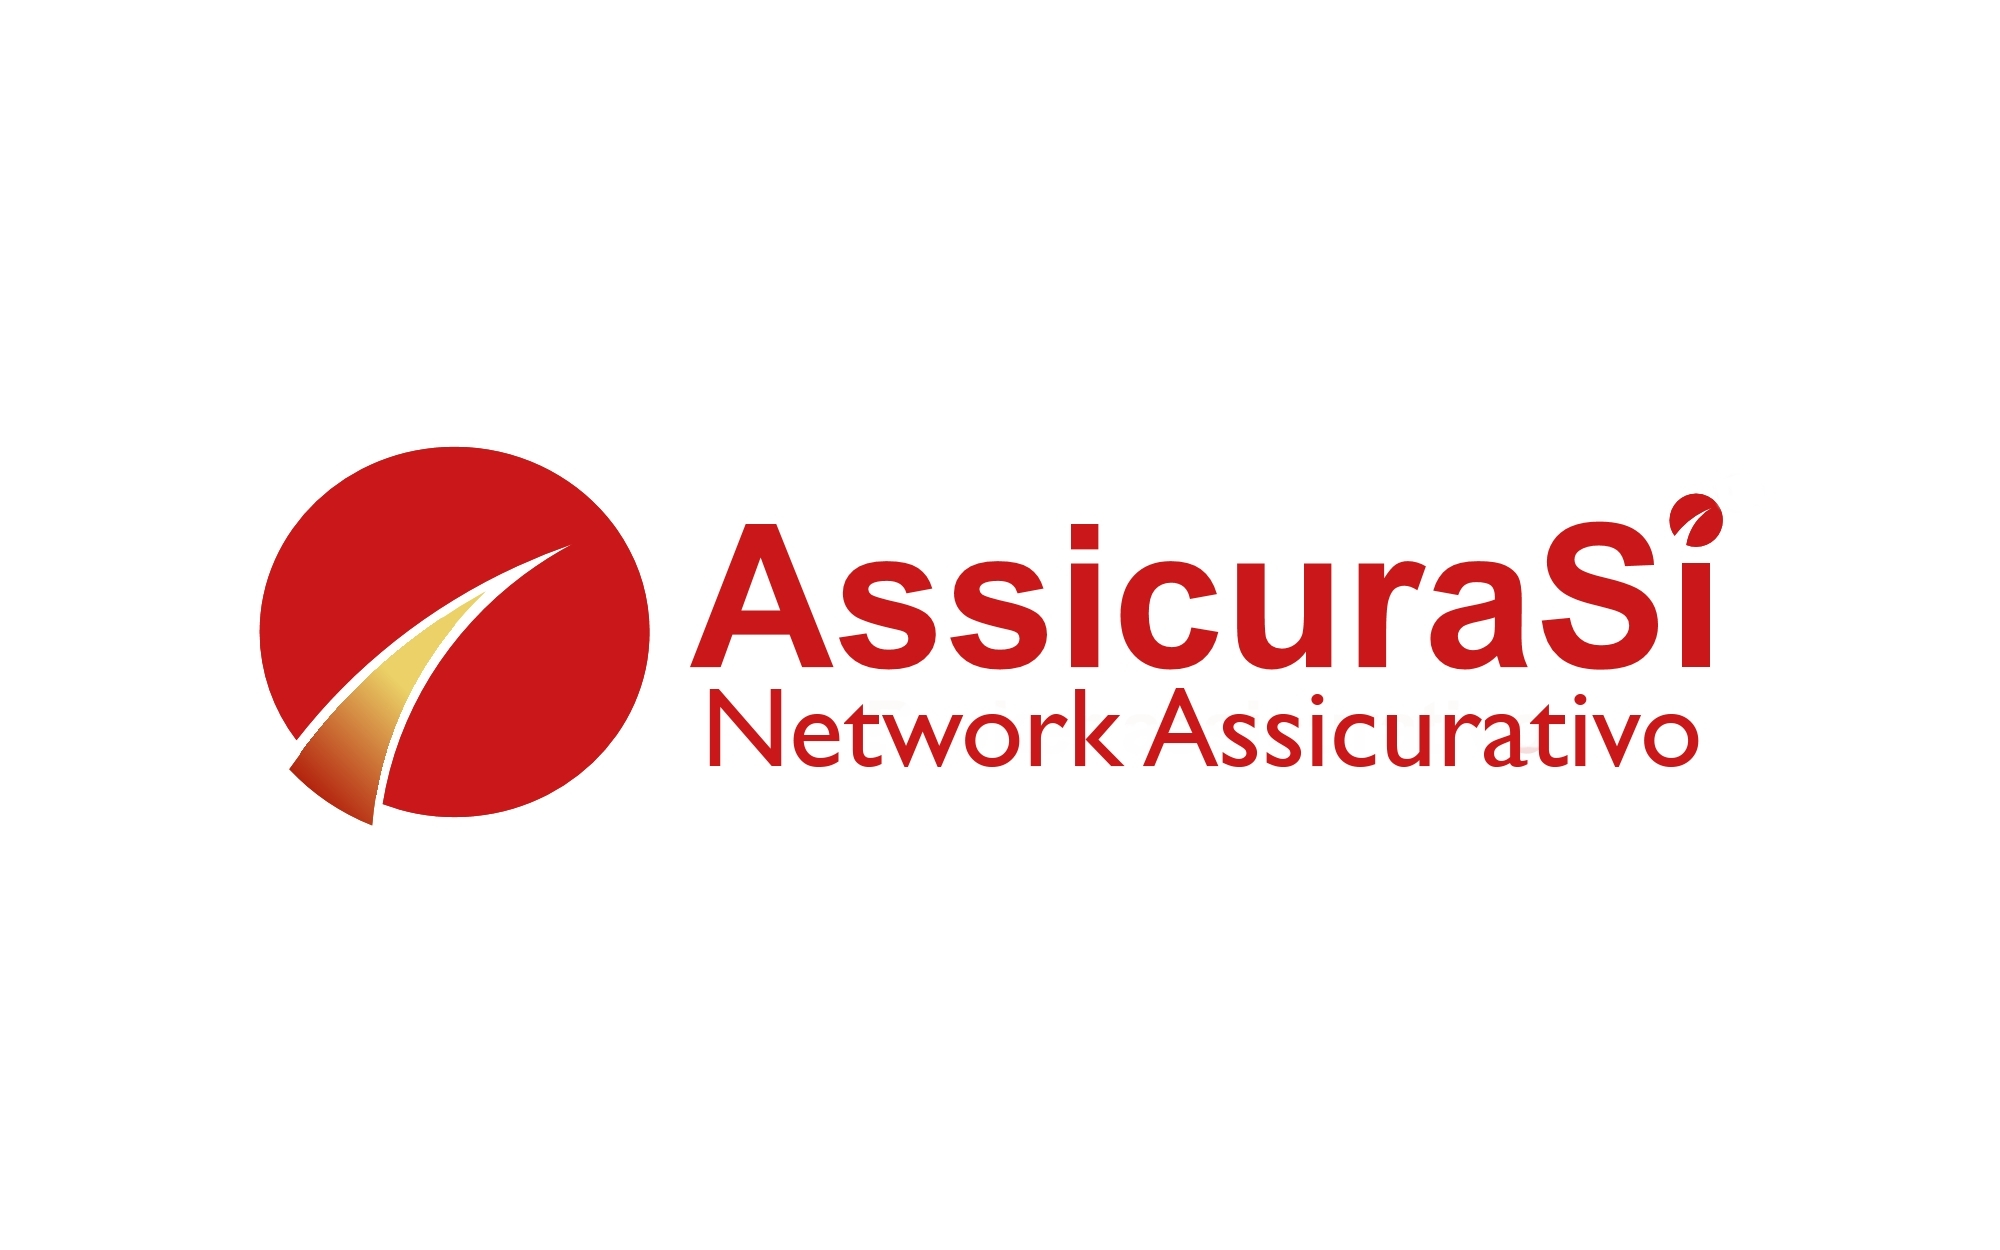 AssicuraSì Network assicurativo HiRes